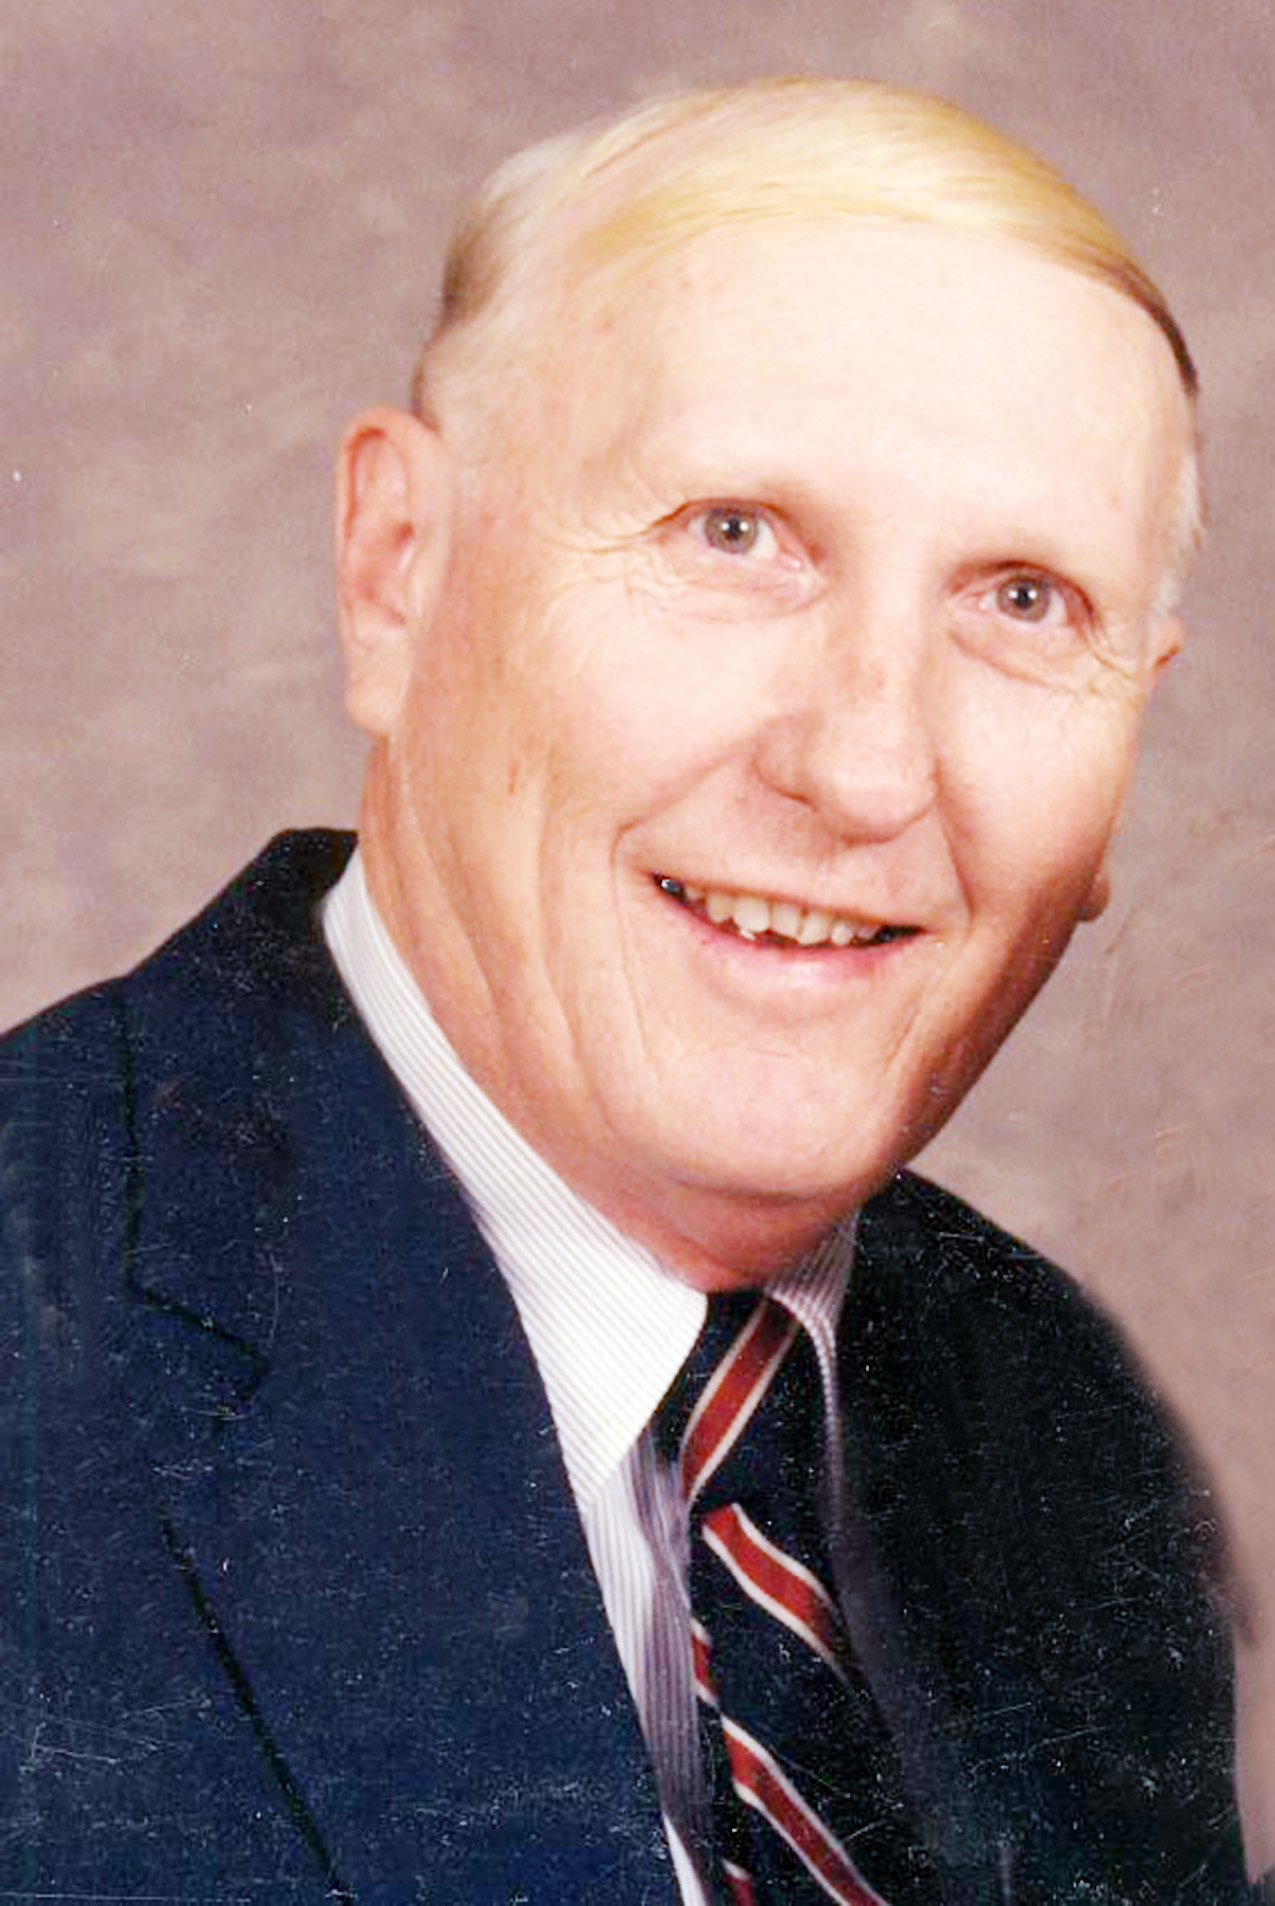 former senator gene carmichael passes away at age 86 the dillon herald